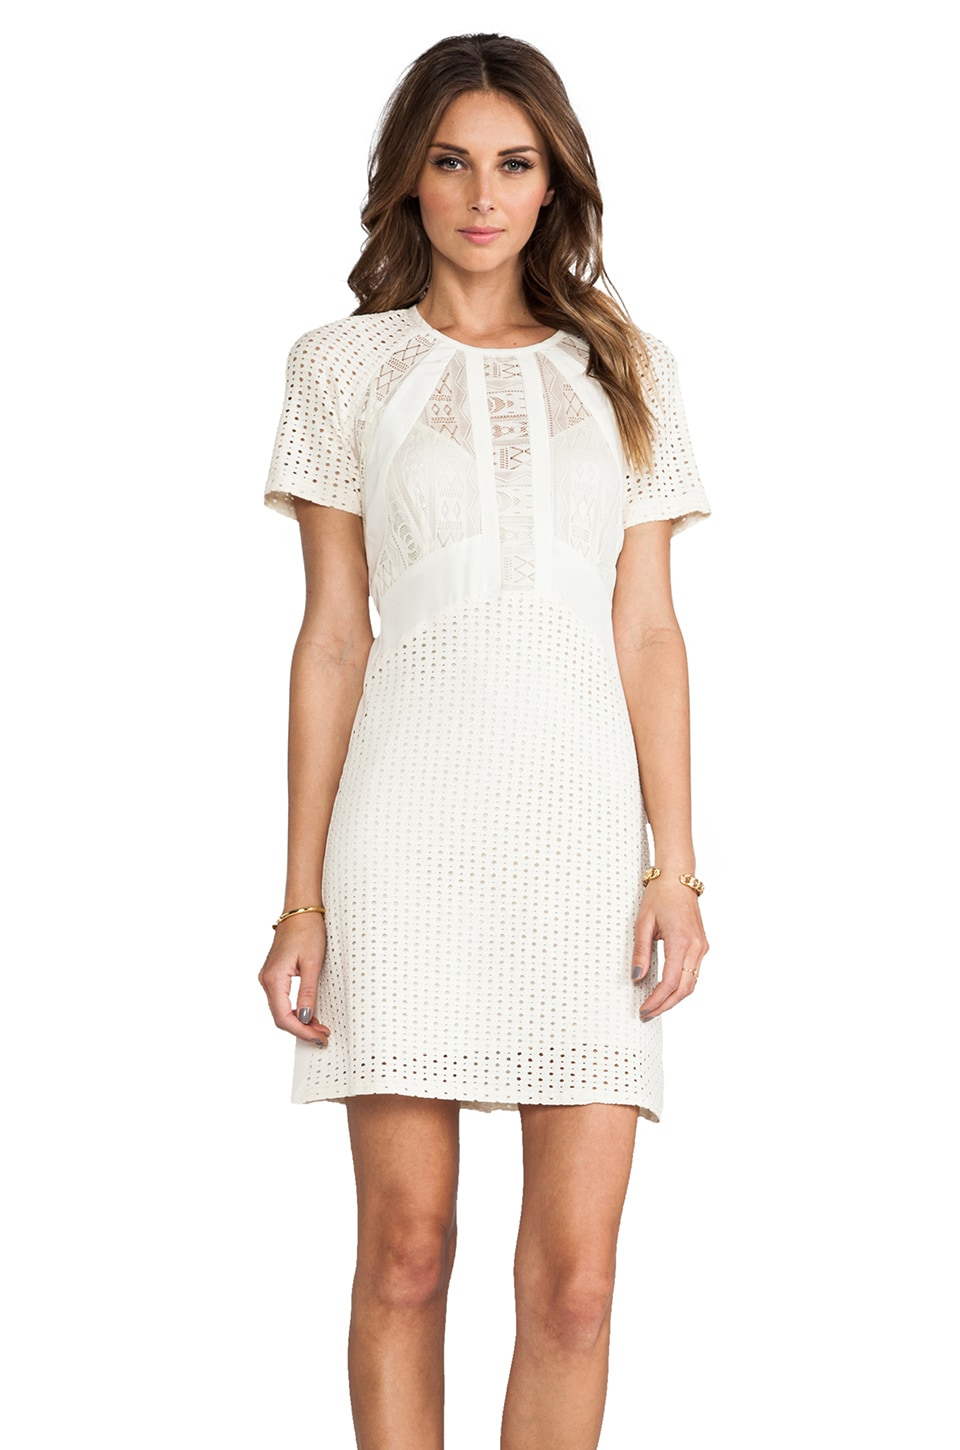 Nanette Lepore Nomad Dress in Ivory